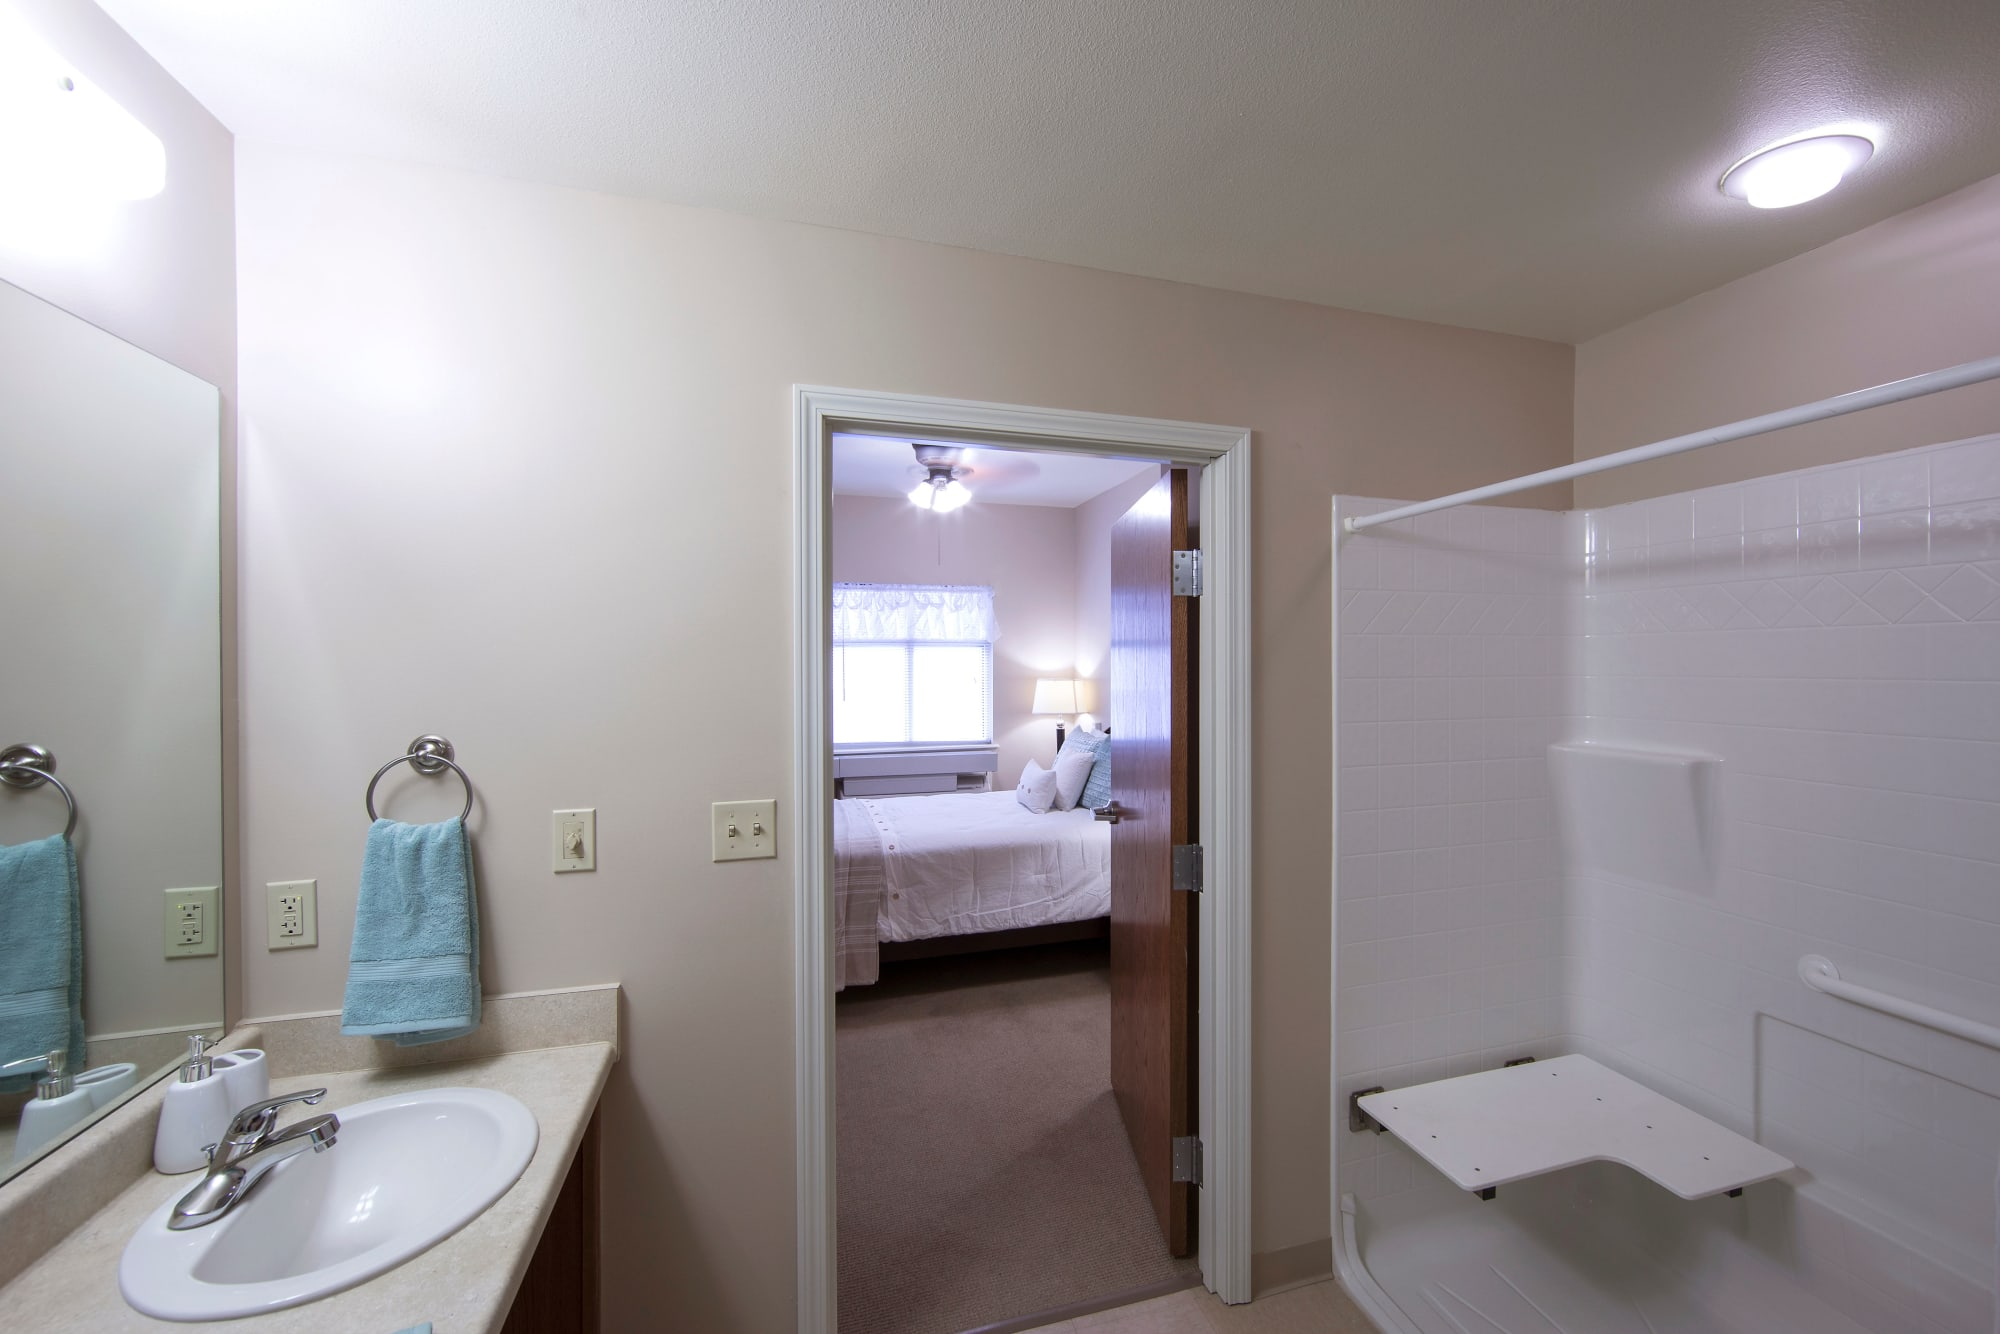 Walk-in shower in a bathroom at Canoe Brook Assisted Living & Memory Care in Catoosa, Oklahoma